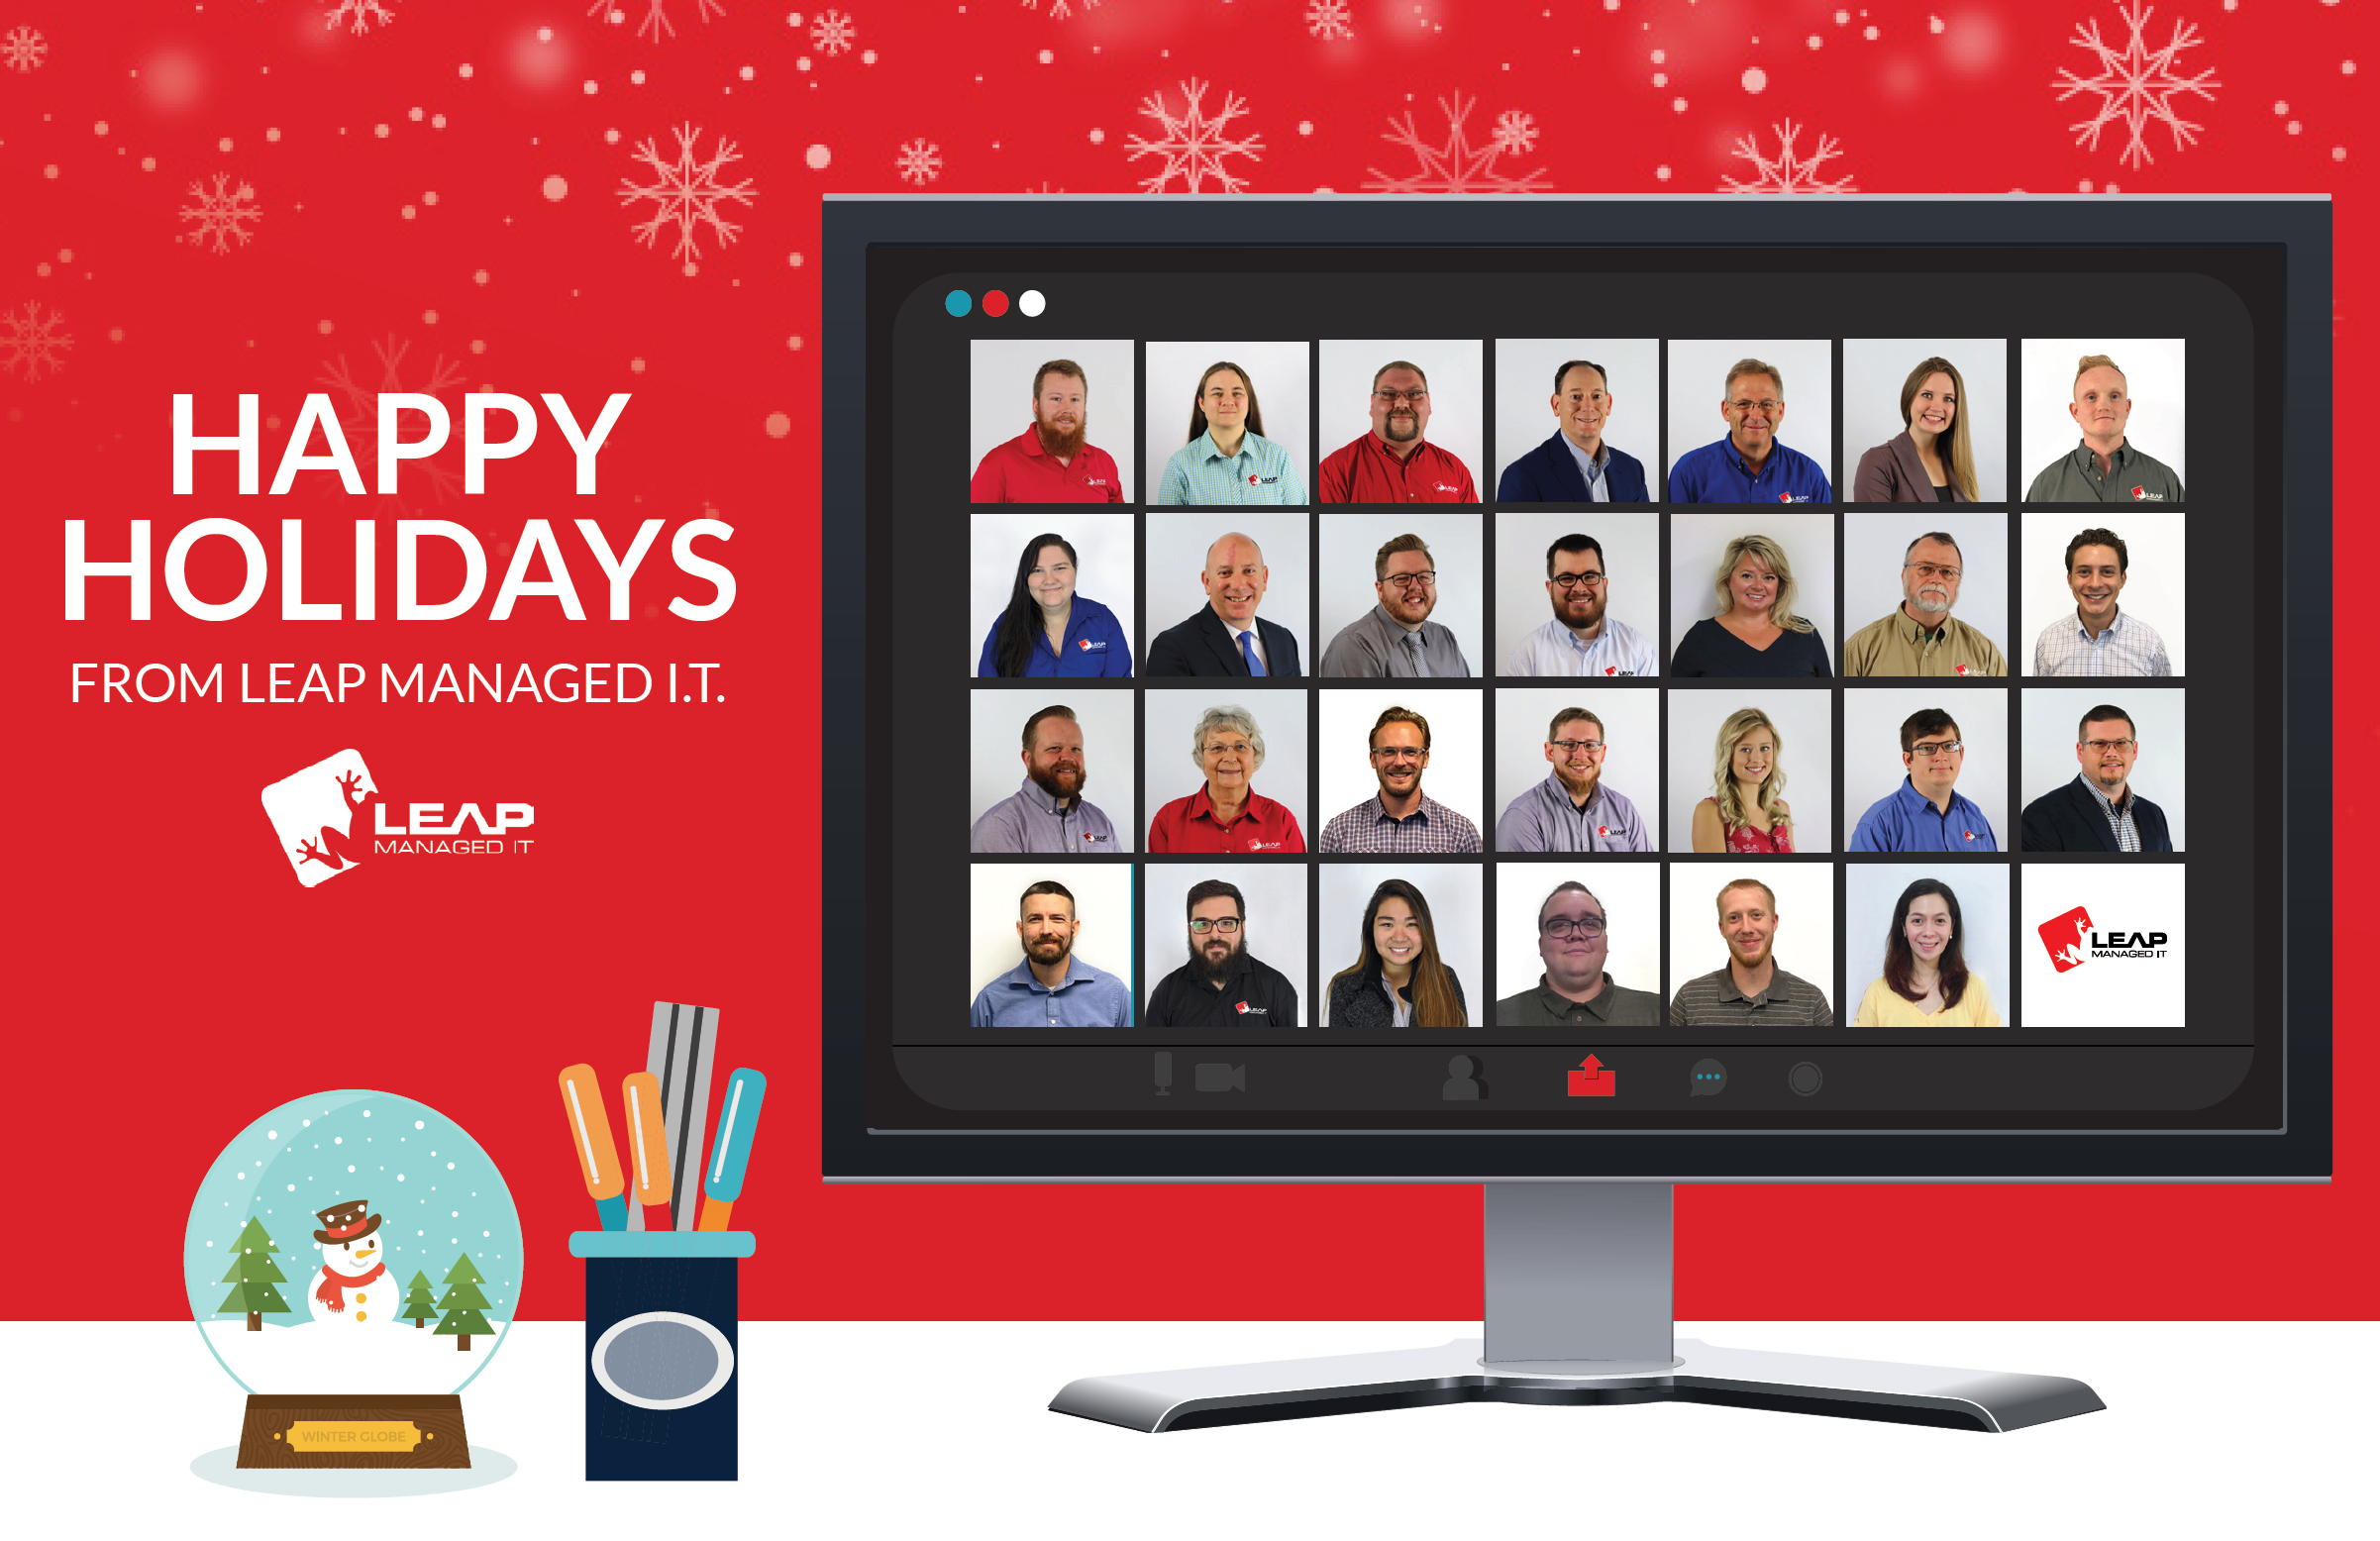 Happy Holidays from LEAP Managed IT